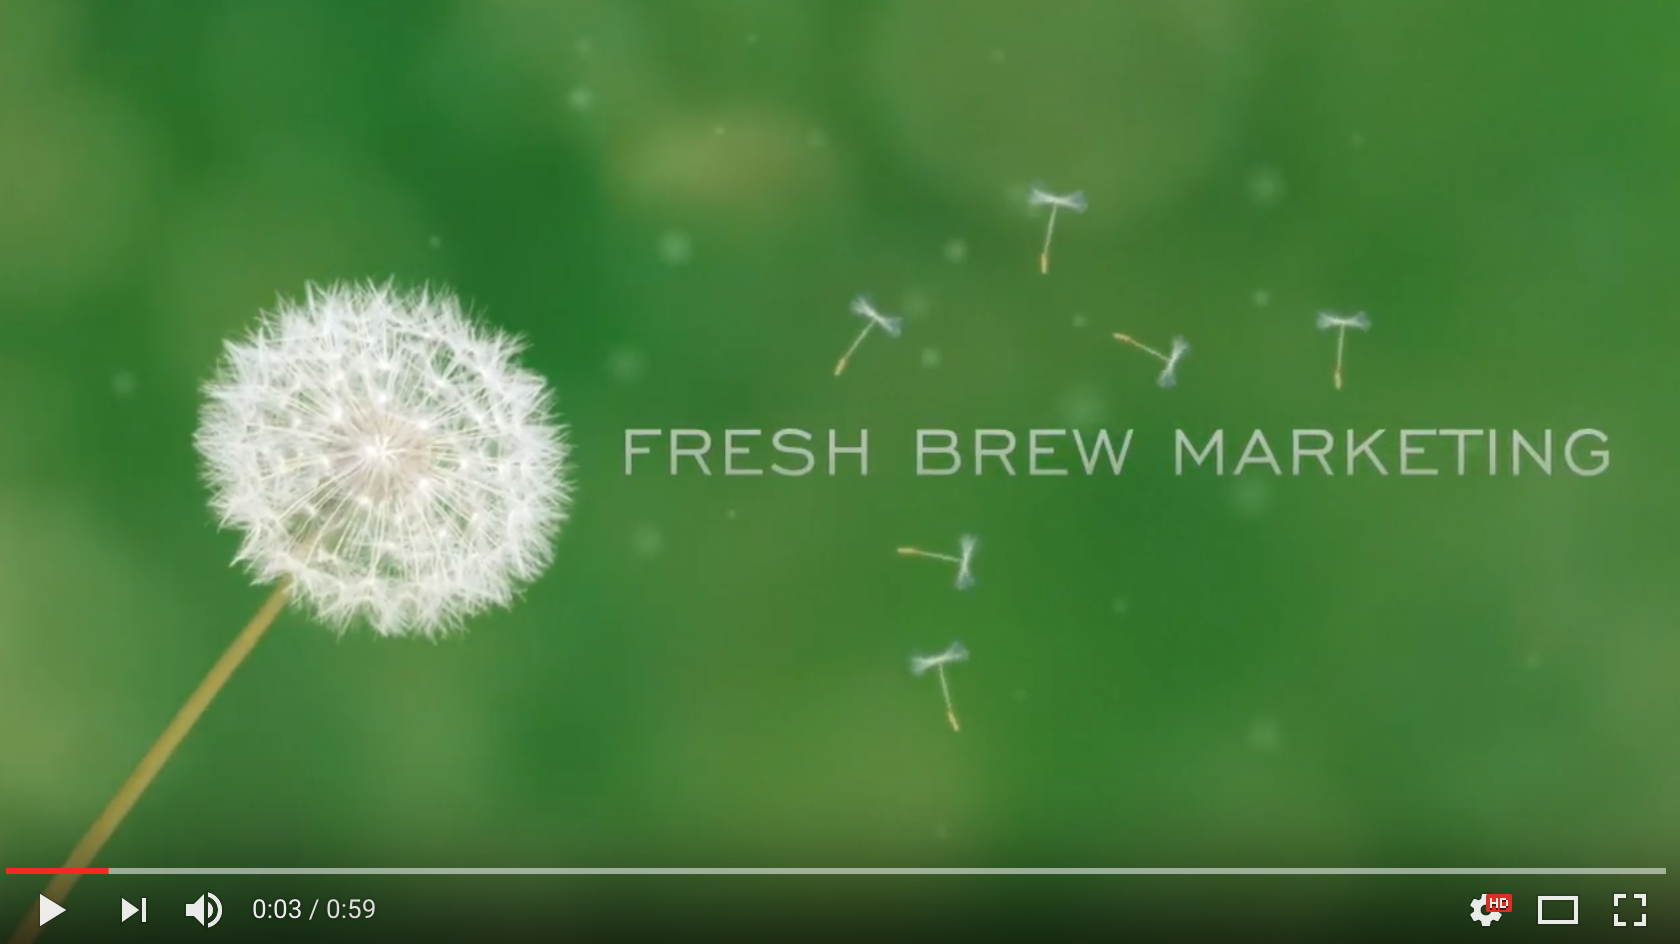 Why Fresh Brew Marketing